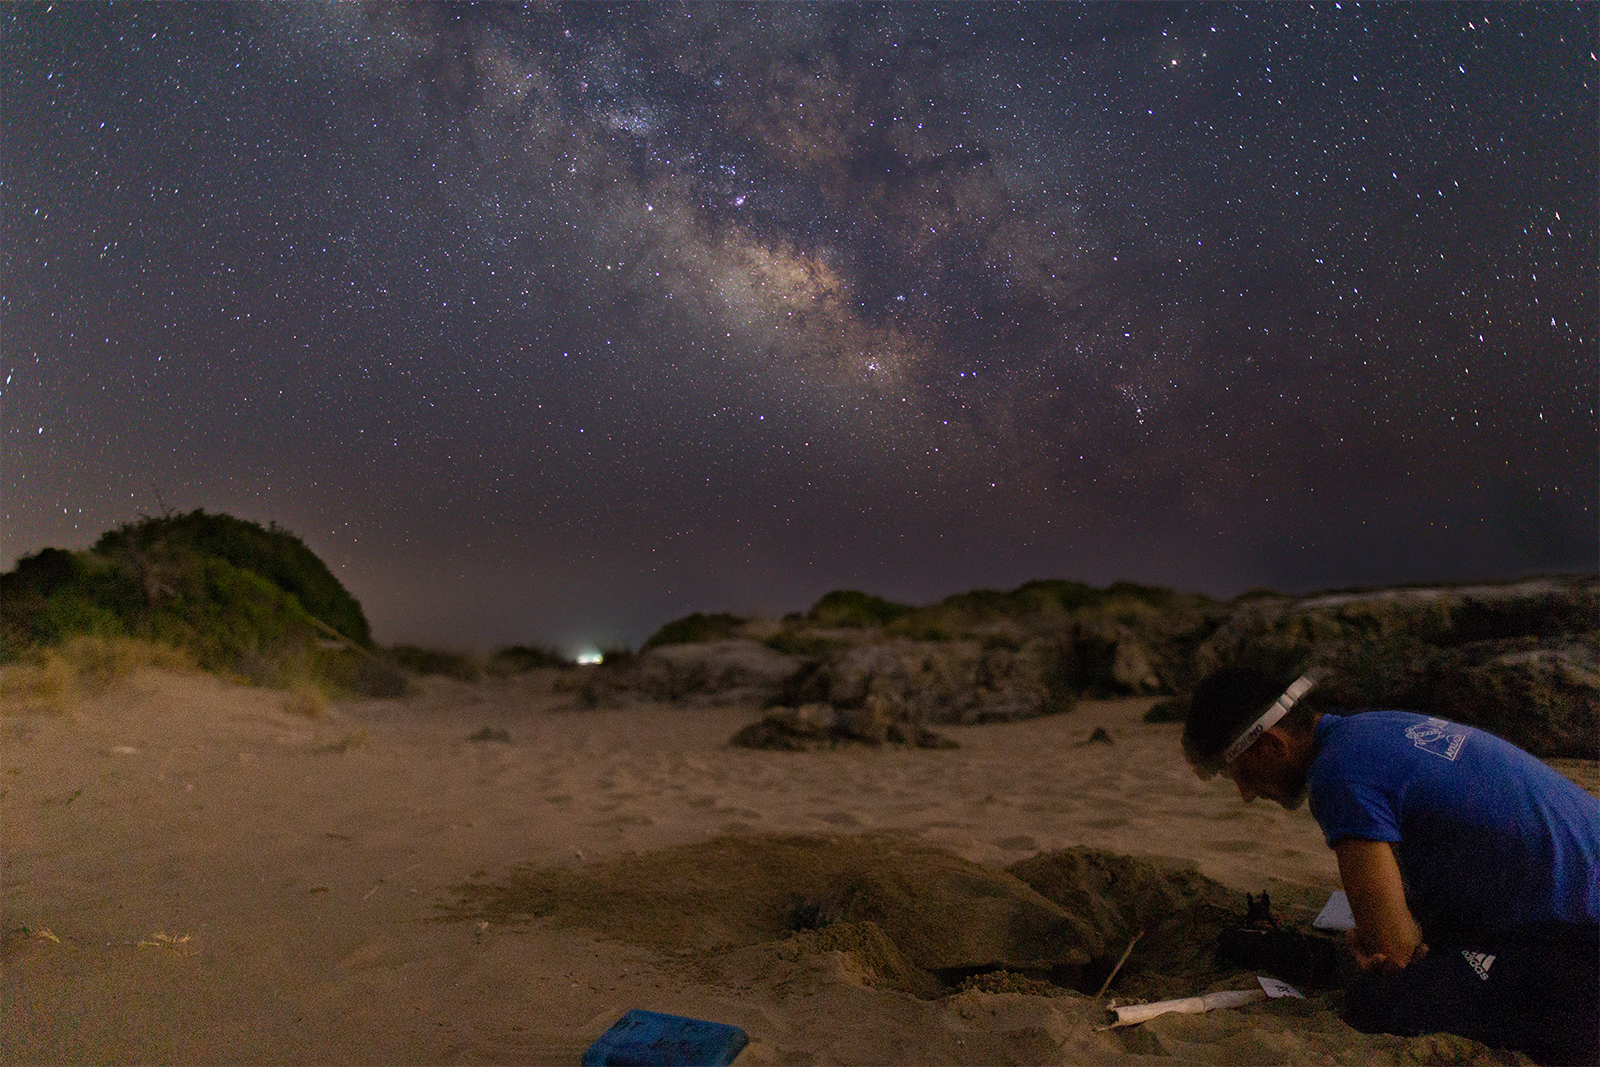 A field researcher in Greece monitors sea turtle nesting activity beneath the light of the Milky Way. Photo taken during ARCHELON night survey. © Kostas Papafitsoros